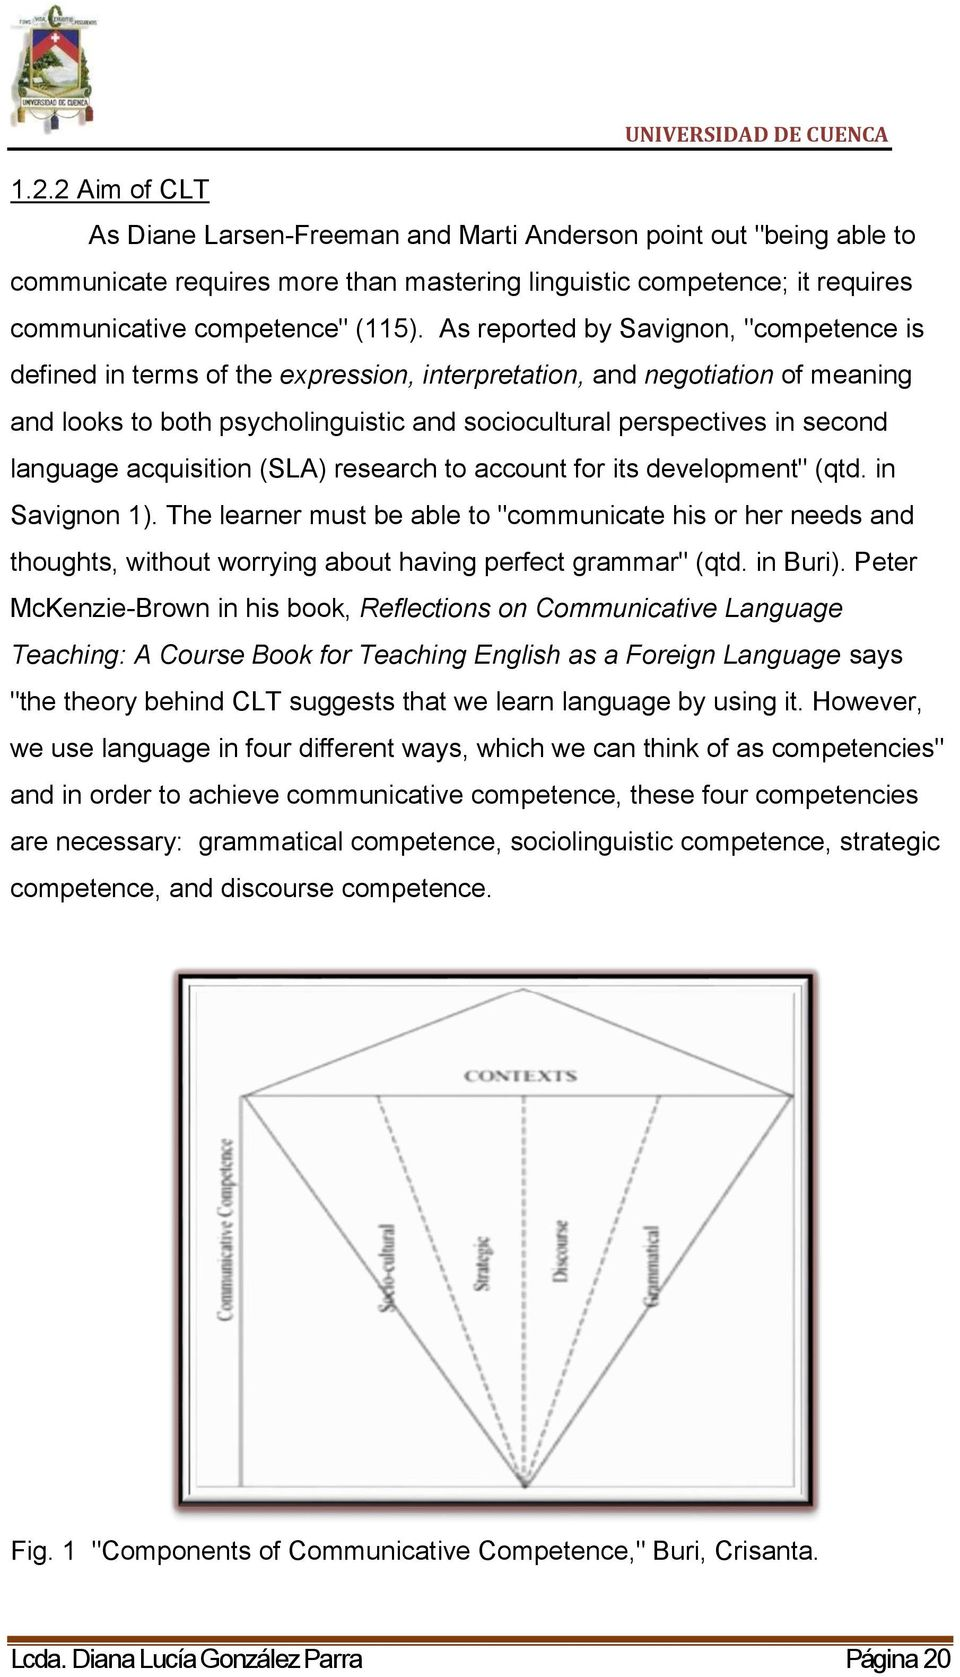 "language acquisition (SLA) research to account for its development"" (qtd. in Savignon 1)."